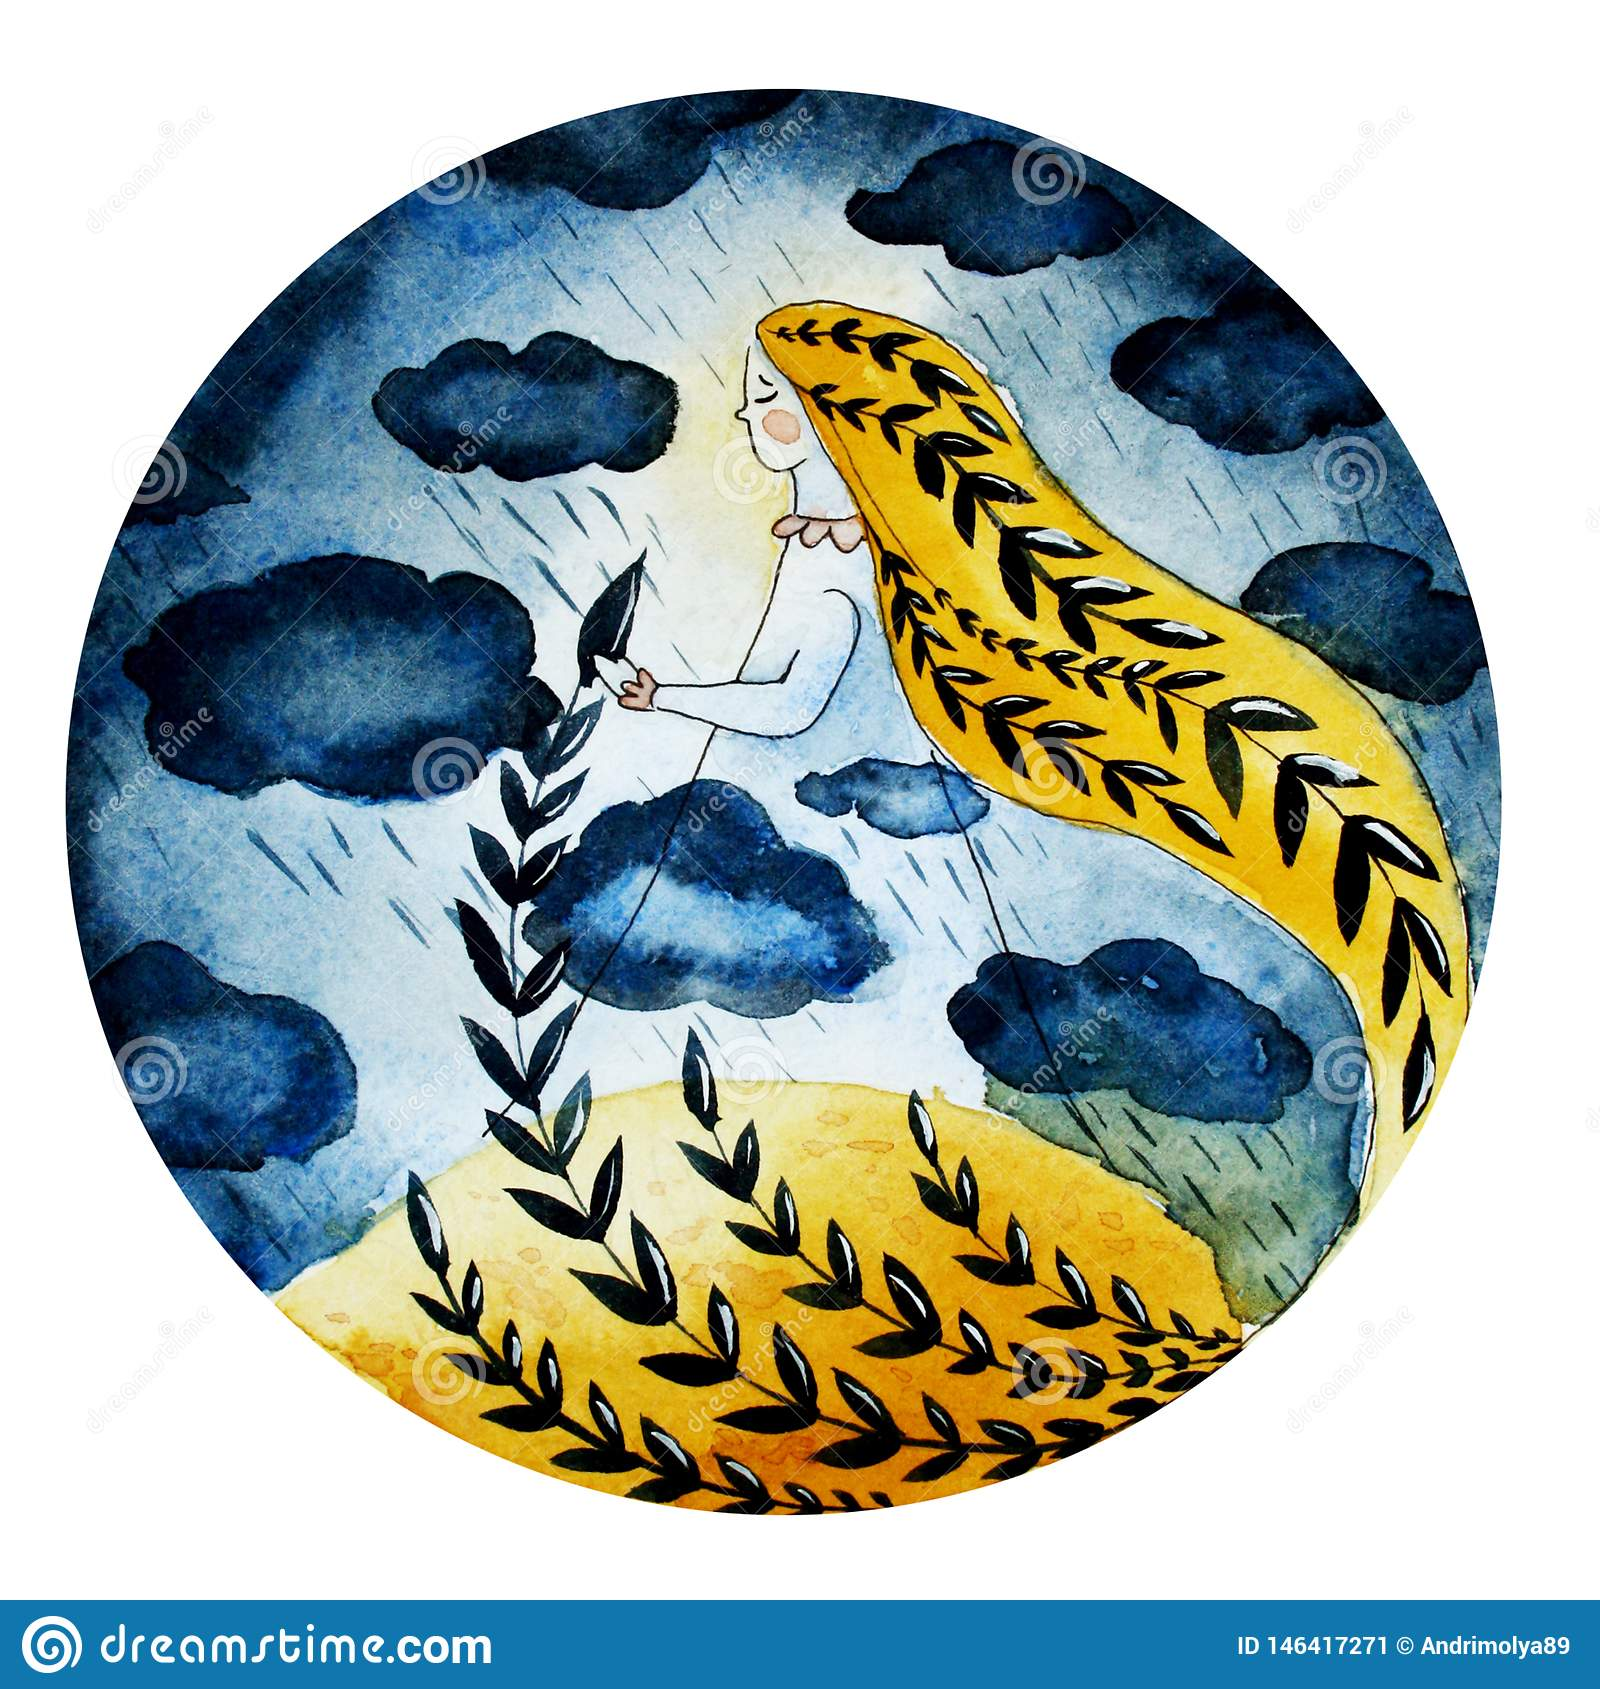 Illustration of a girl of clouds and rain